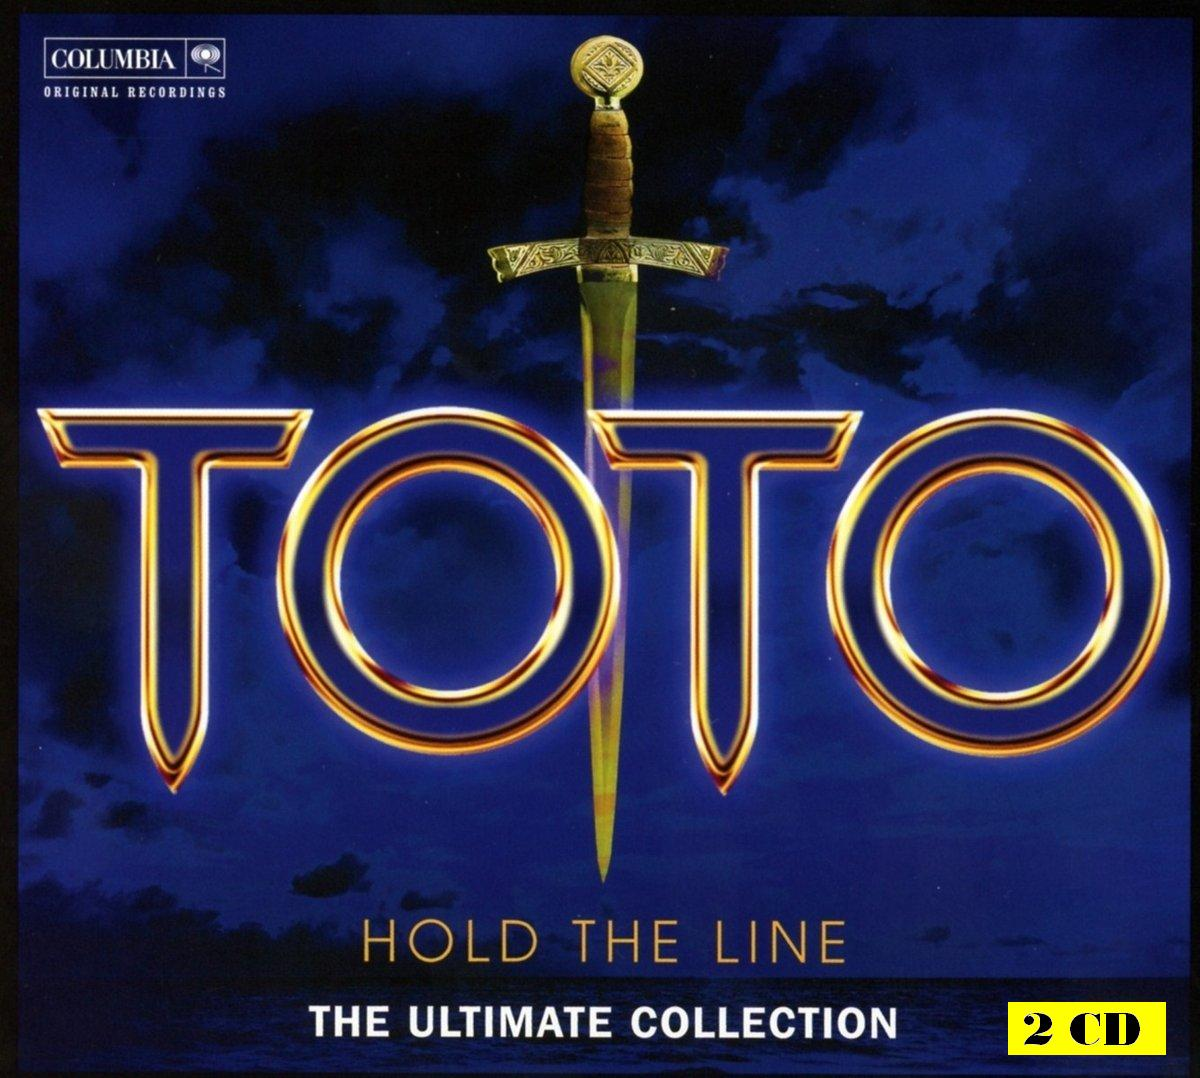 MIJAS: TOTO - Hold The Line The Ultimate Collection